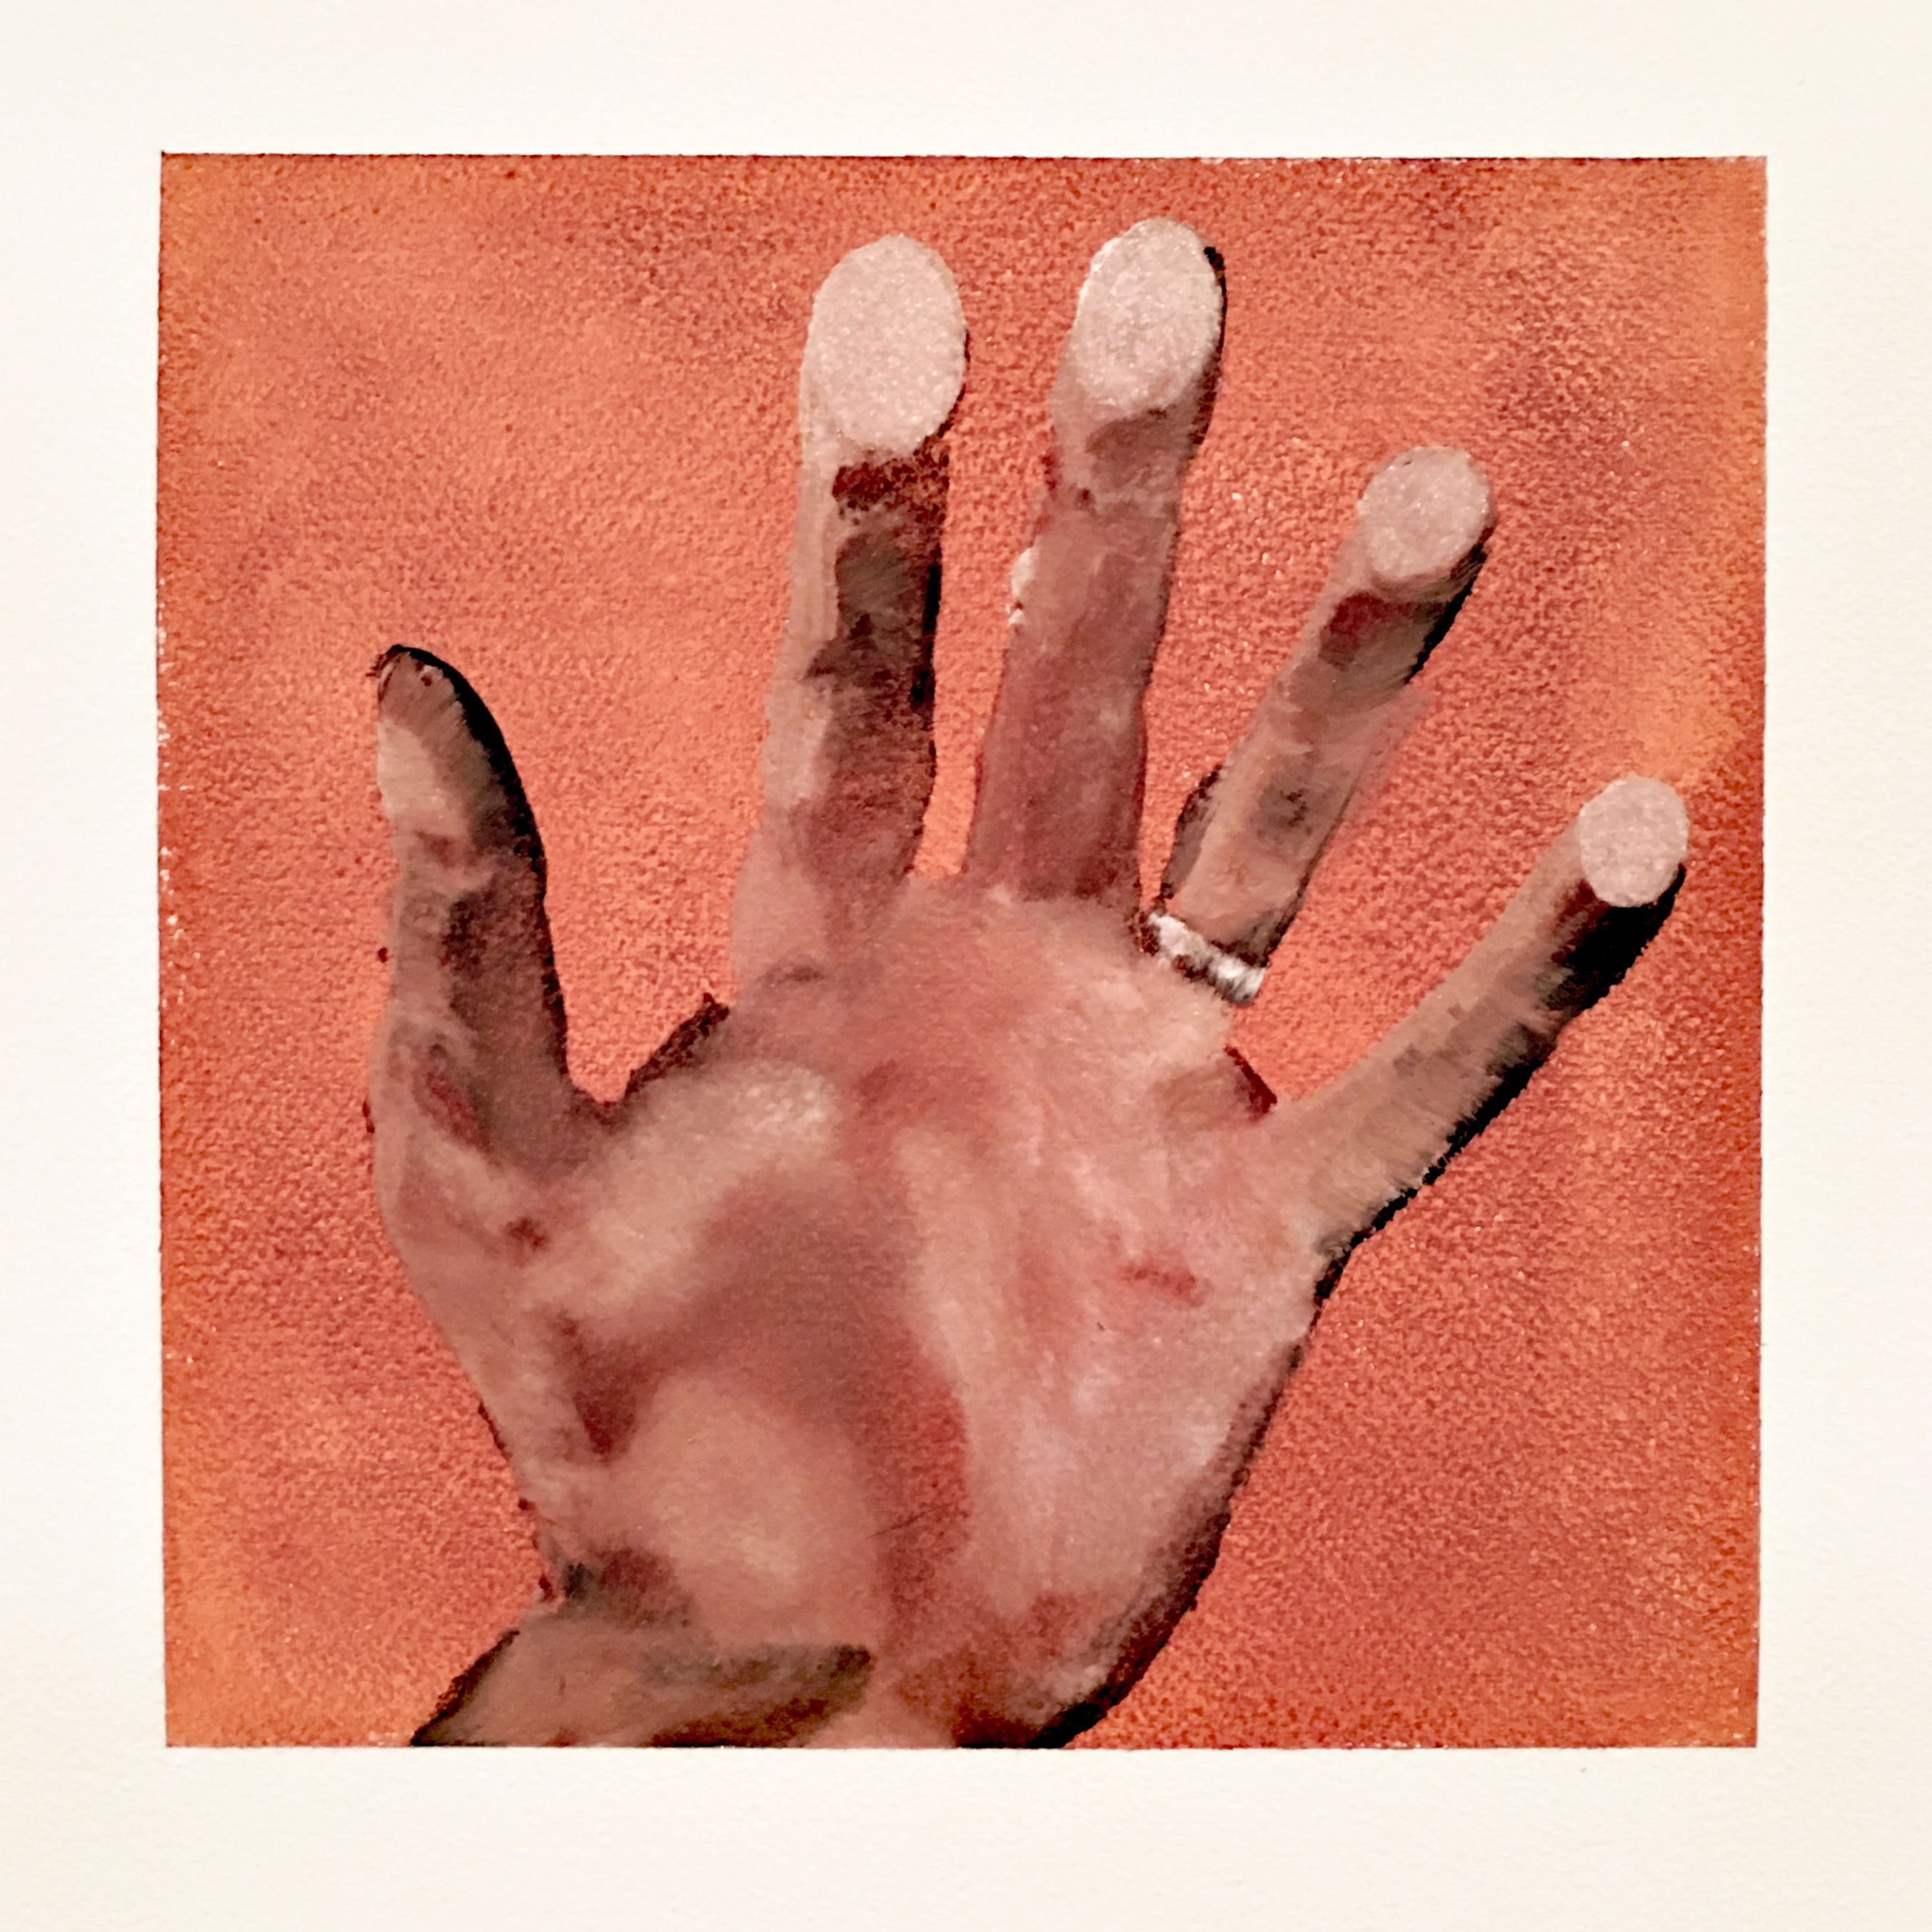 James_Buckhouse_Hand_Oil_On_Prepared_Paper_2018